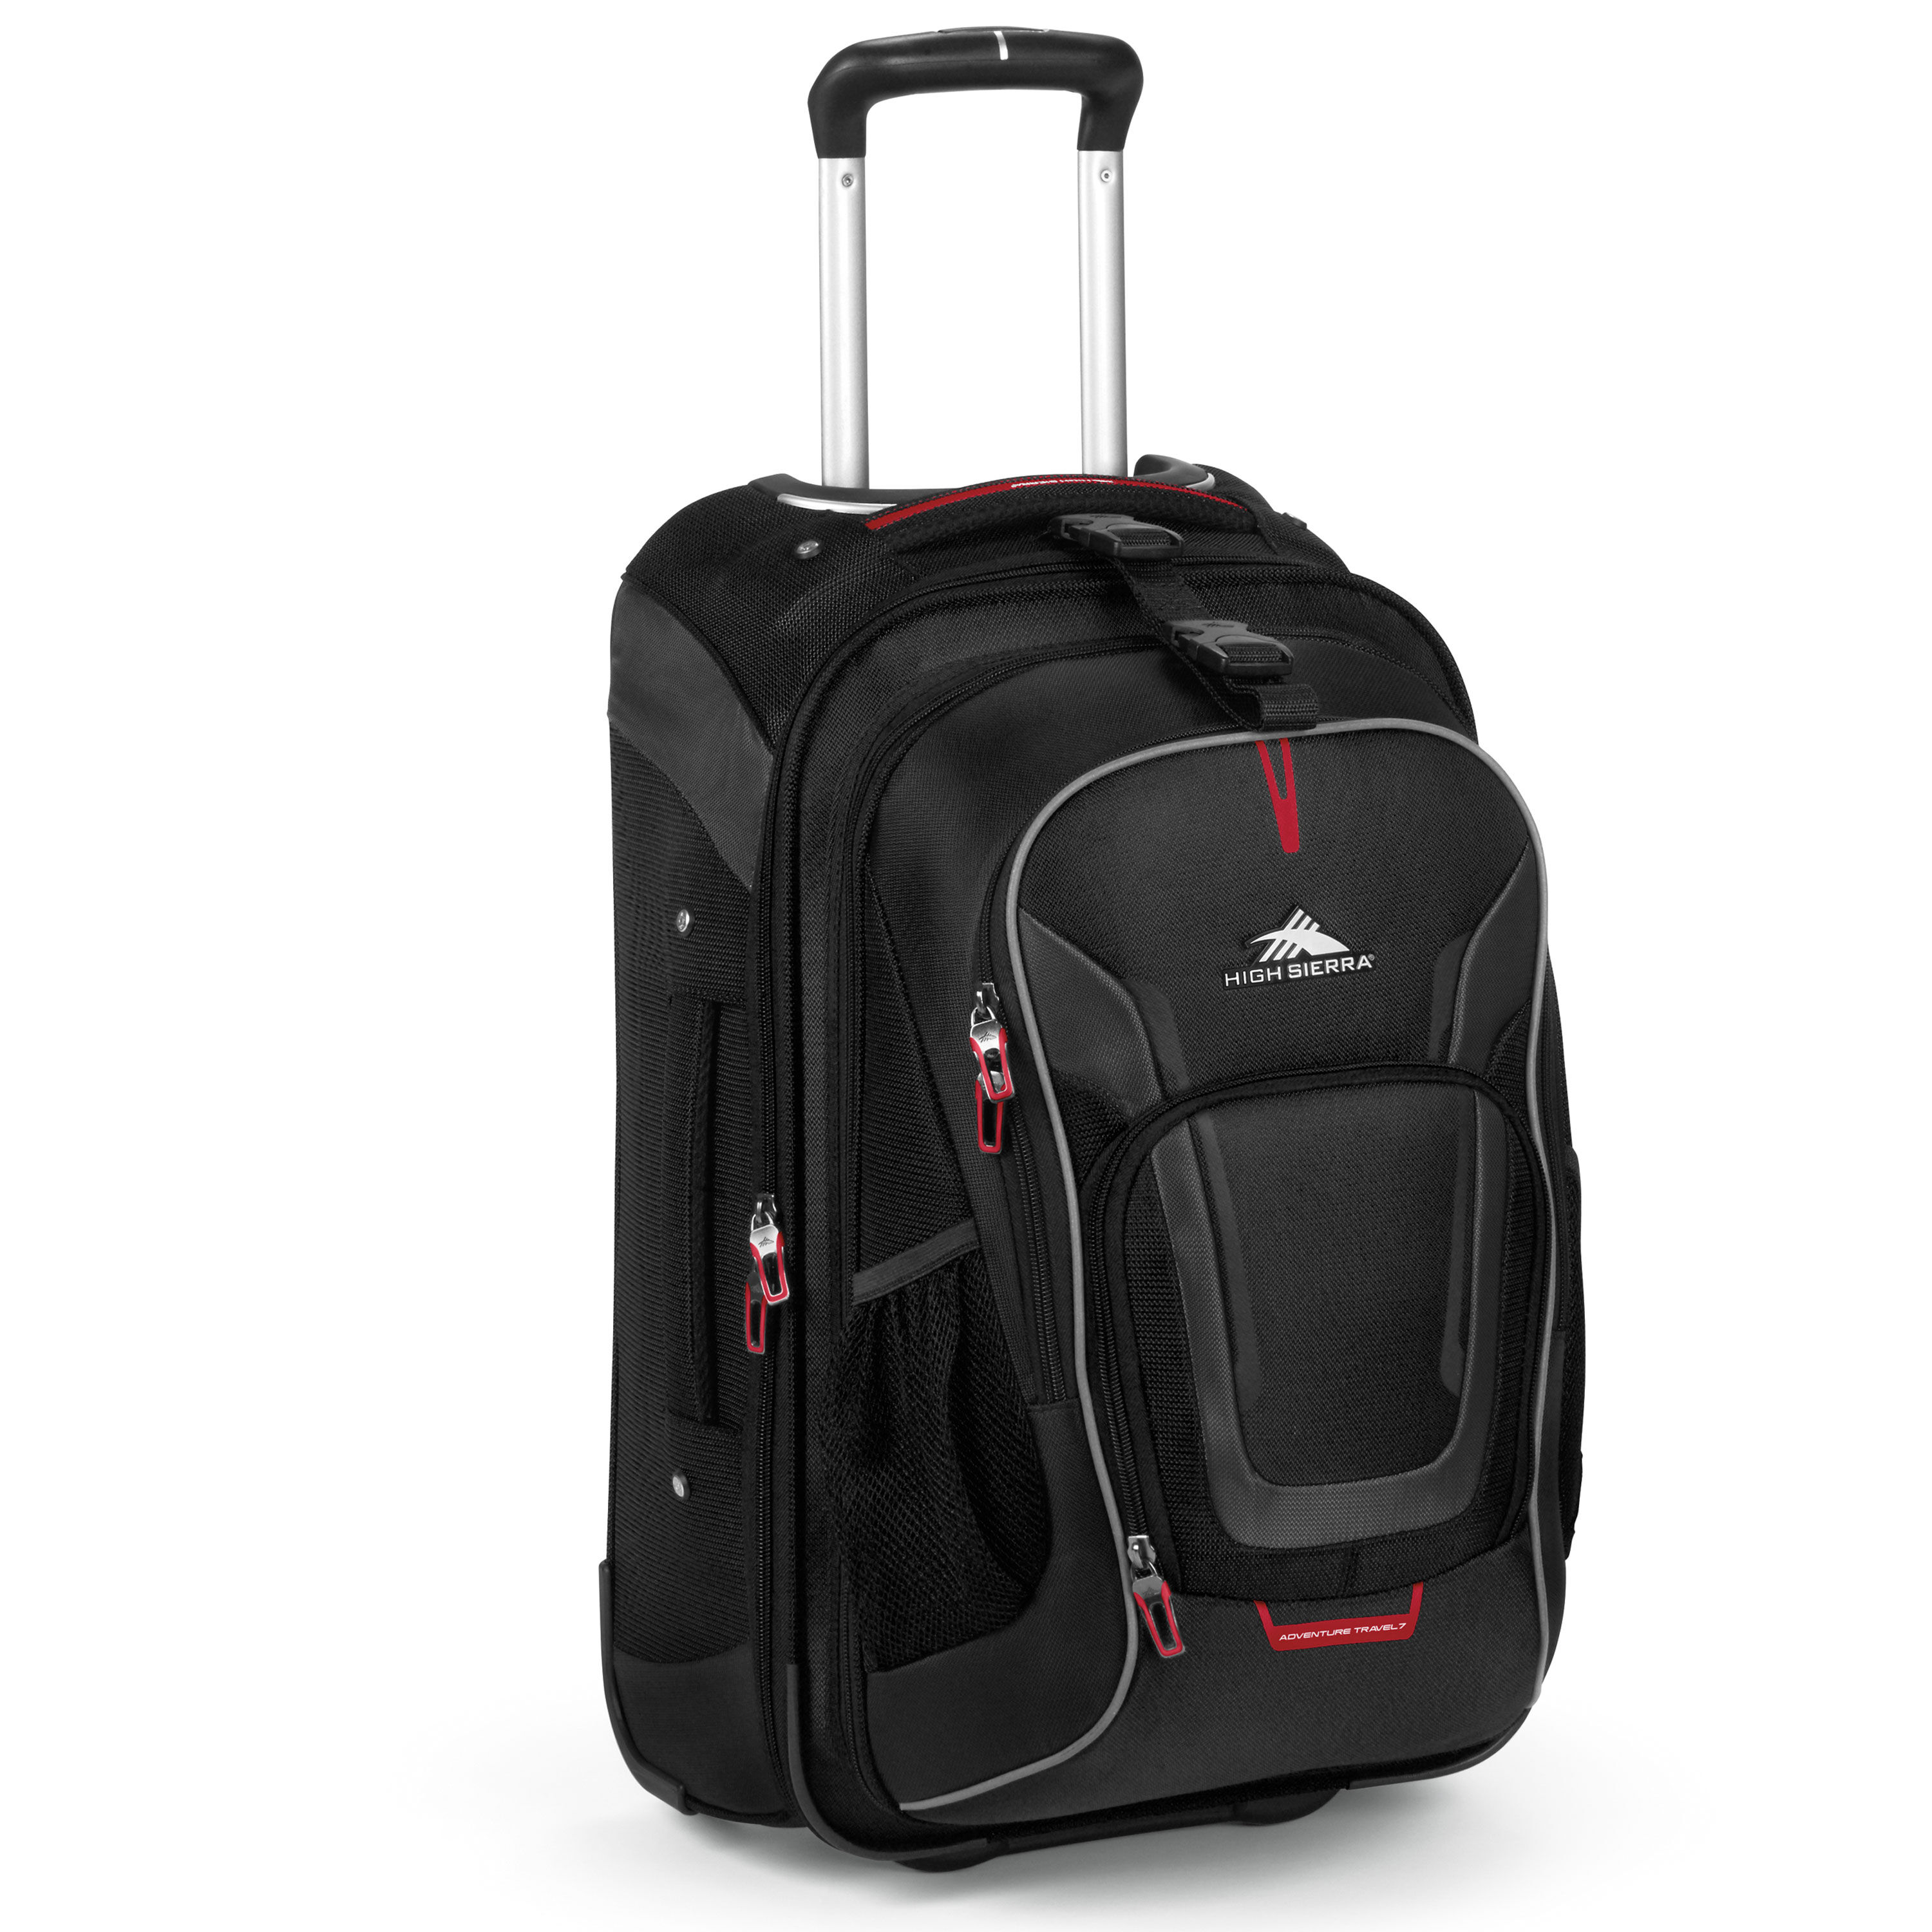 At7 Carry On Wheeled Backpack